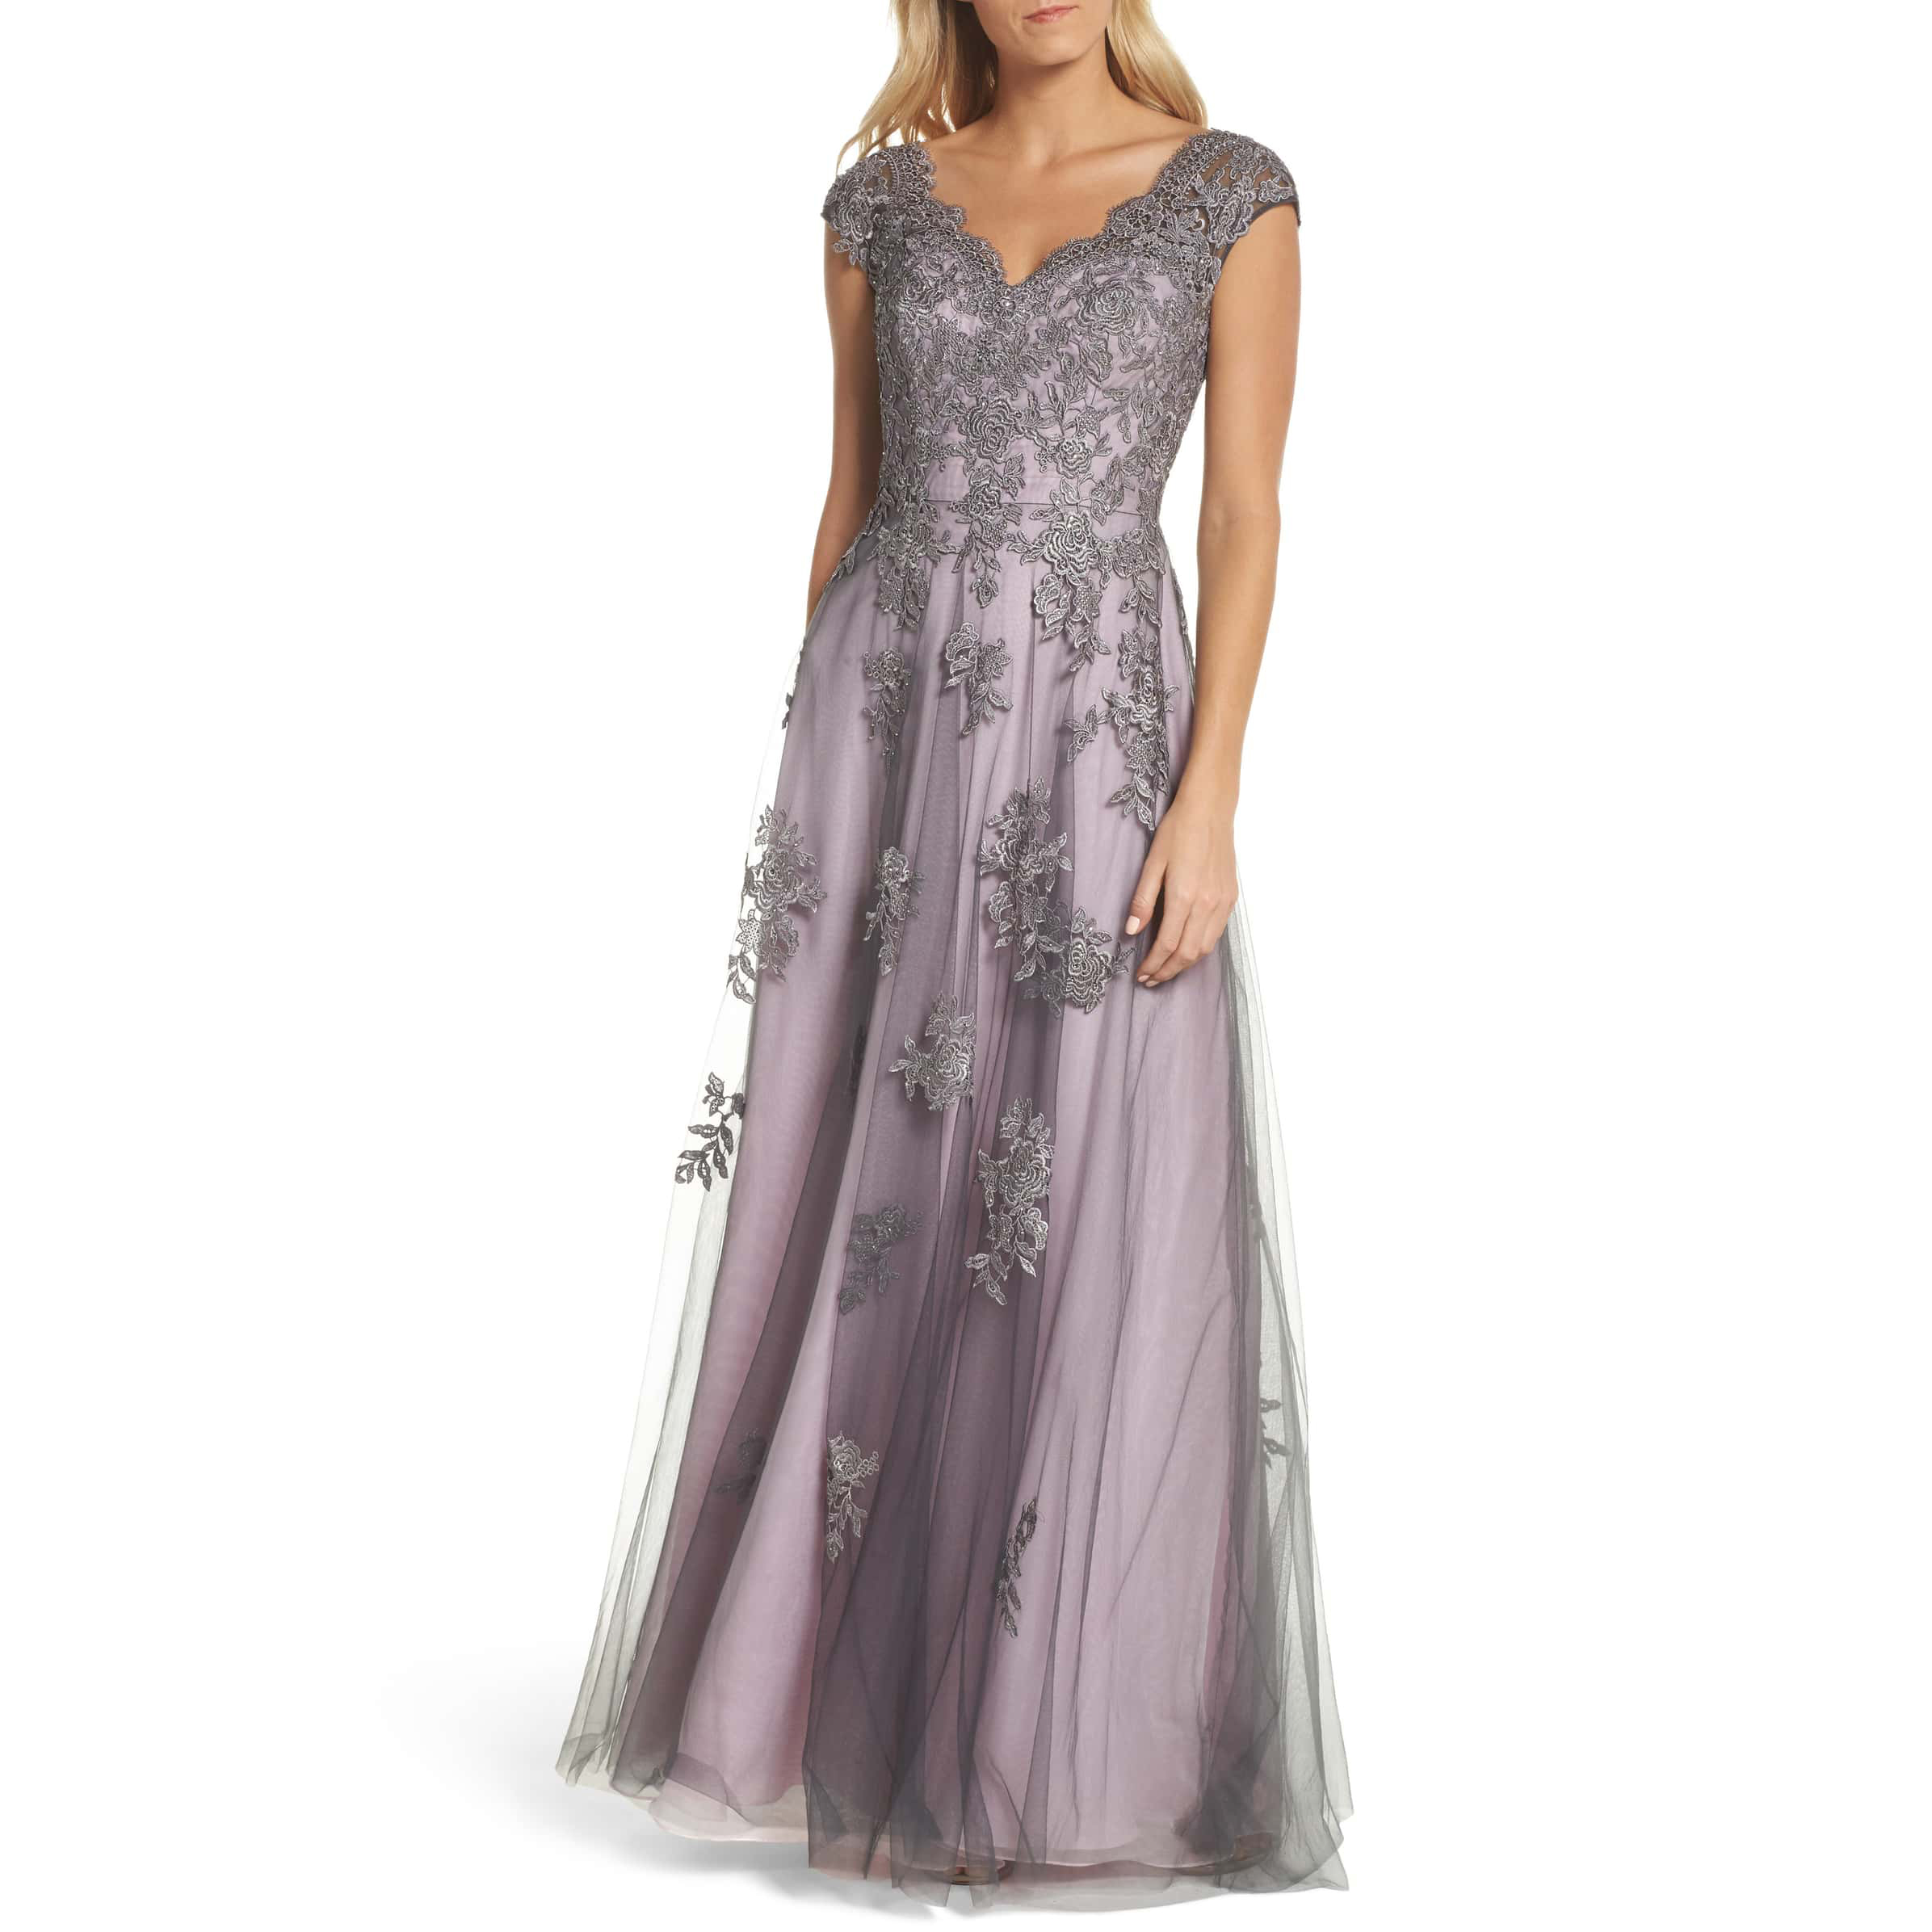 colorful wedding gowns La Femme Embellished Mesh A-Line Gown dove gray pale pink nordstrom photo